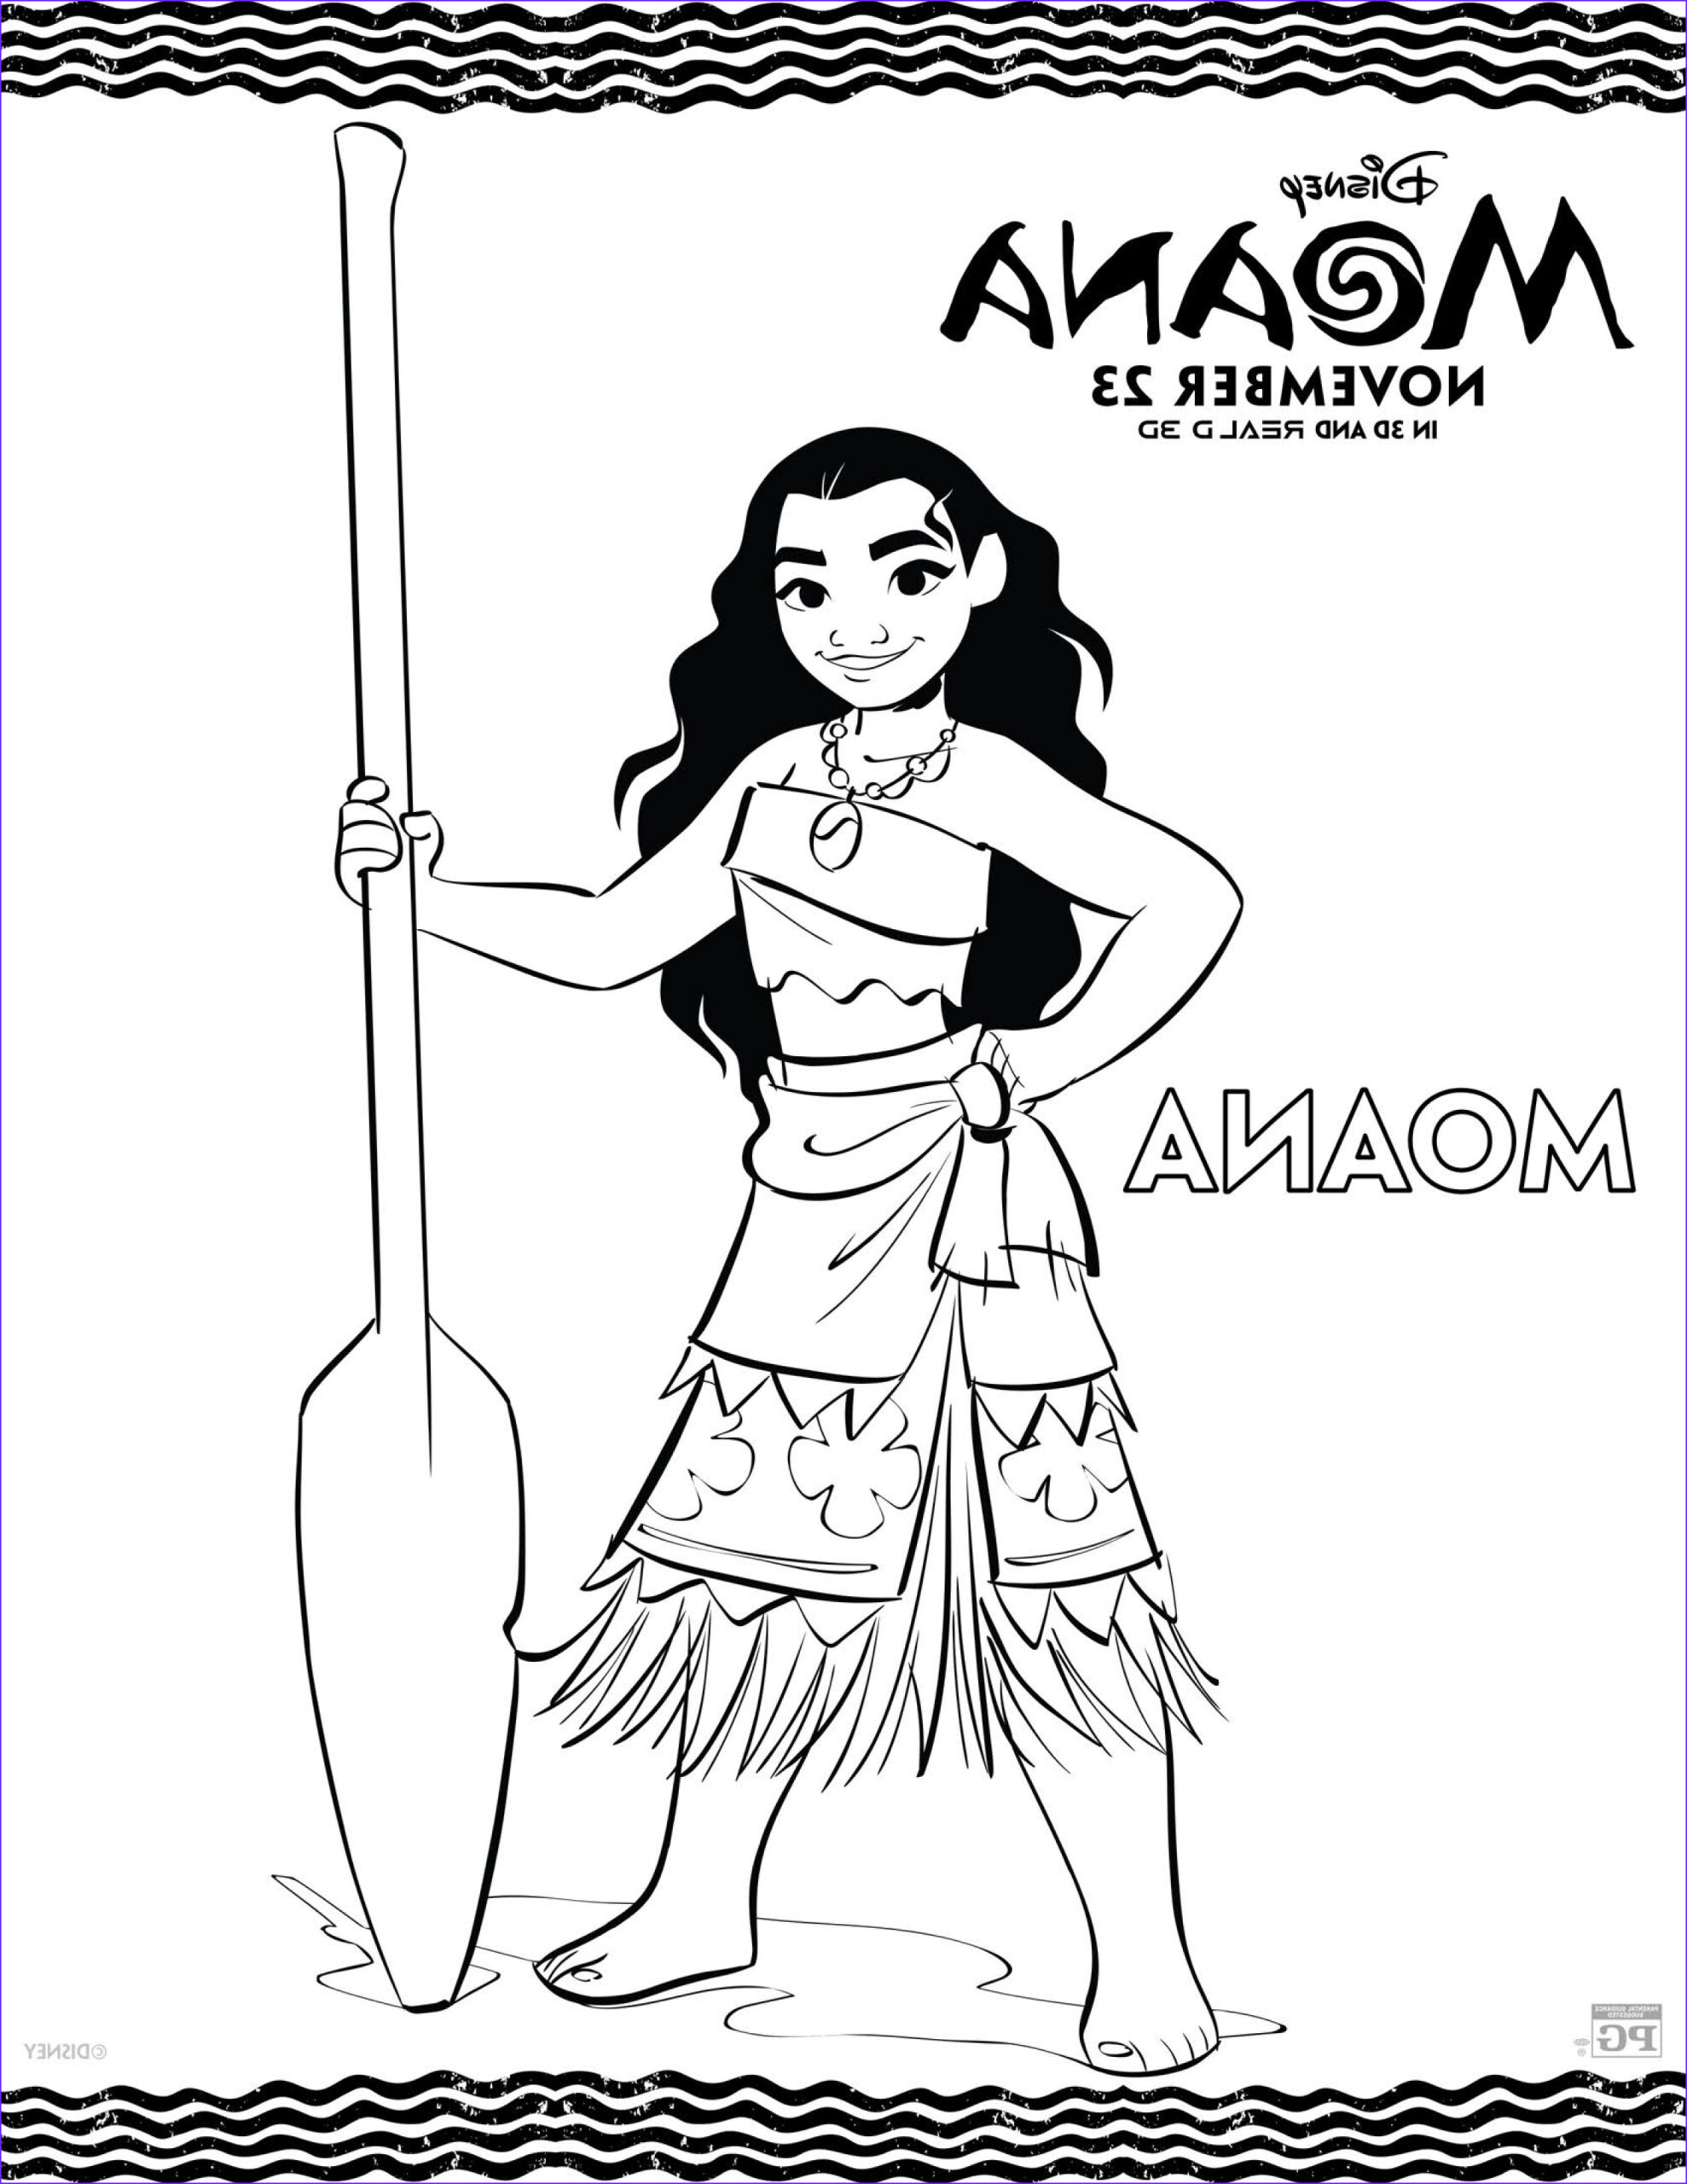 Moana Coloring Beautiful Photos Moana Coloring Pages Best Coloring Pages for Kids